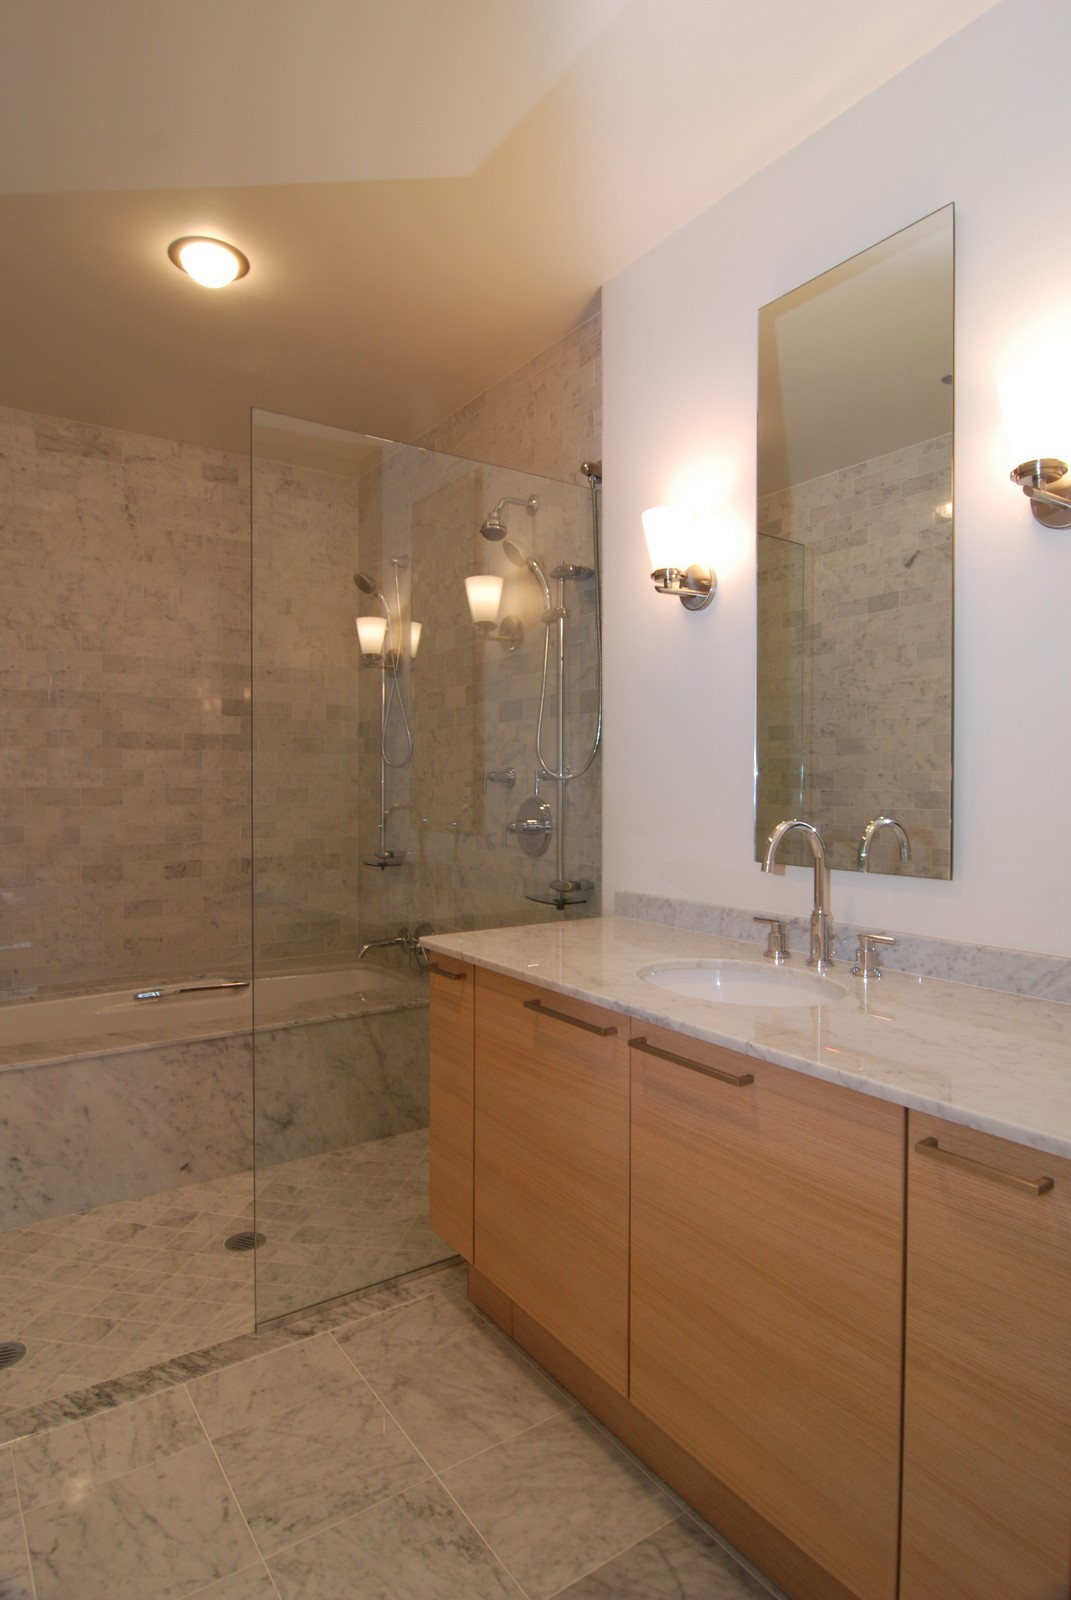 Real Estate Photography - 10 E Delaware Ave, Chicago, IL, 60610 - Bathroom